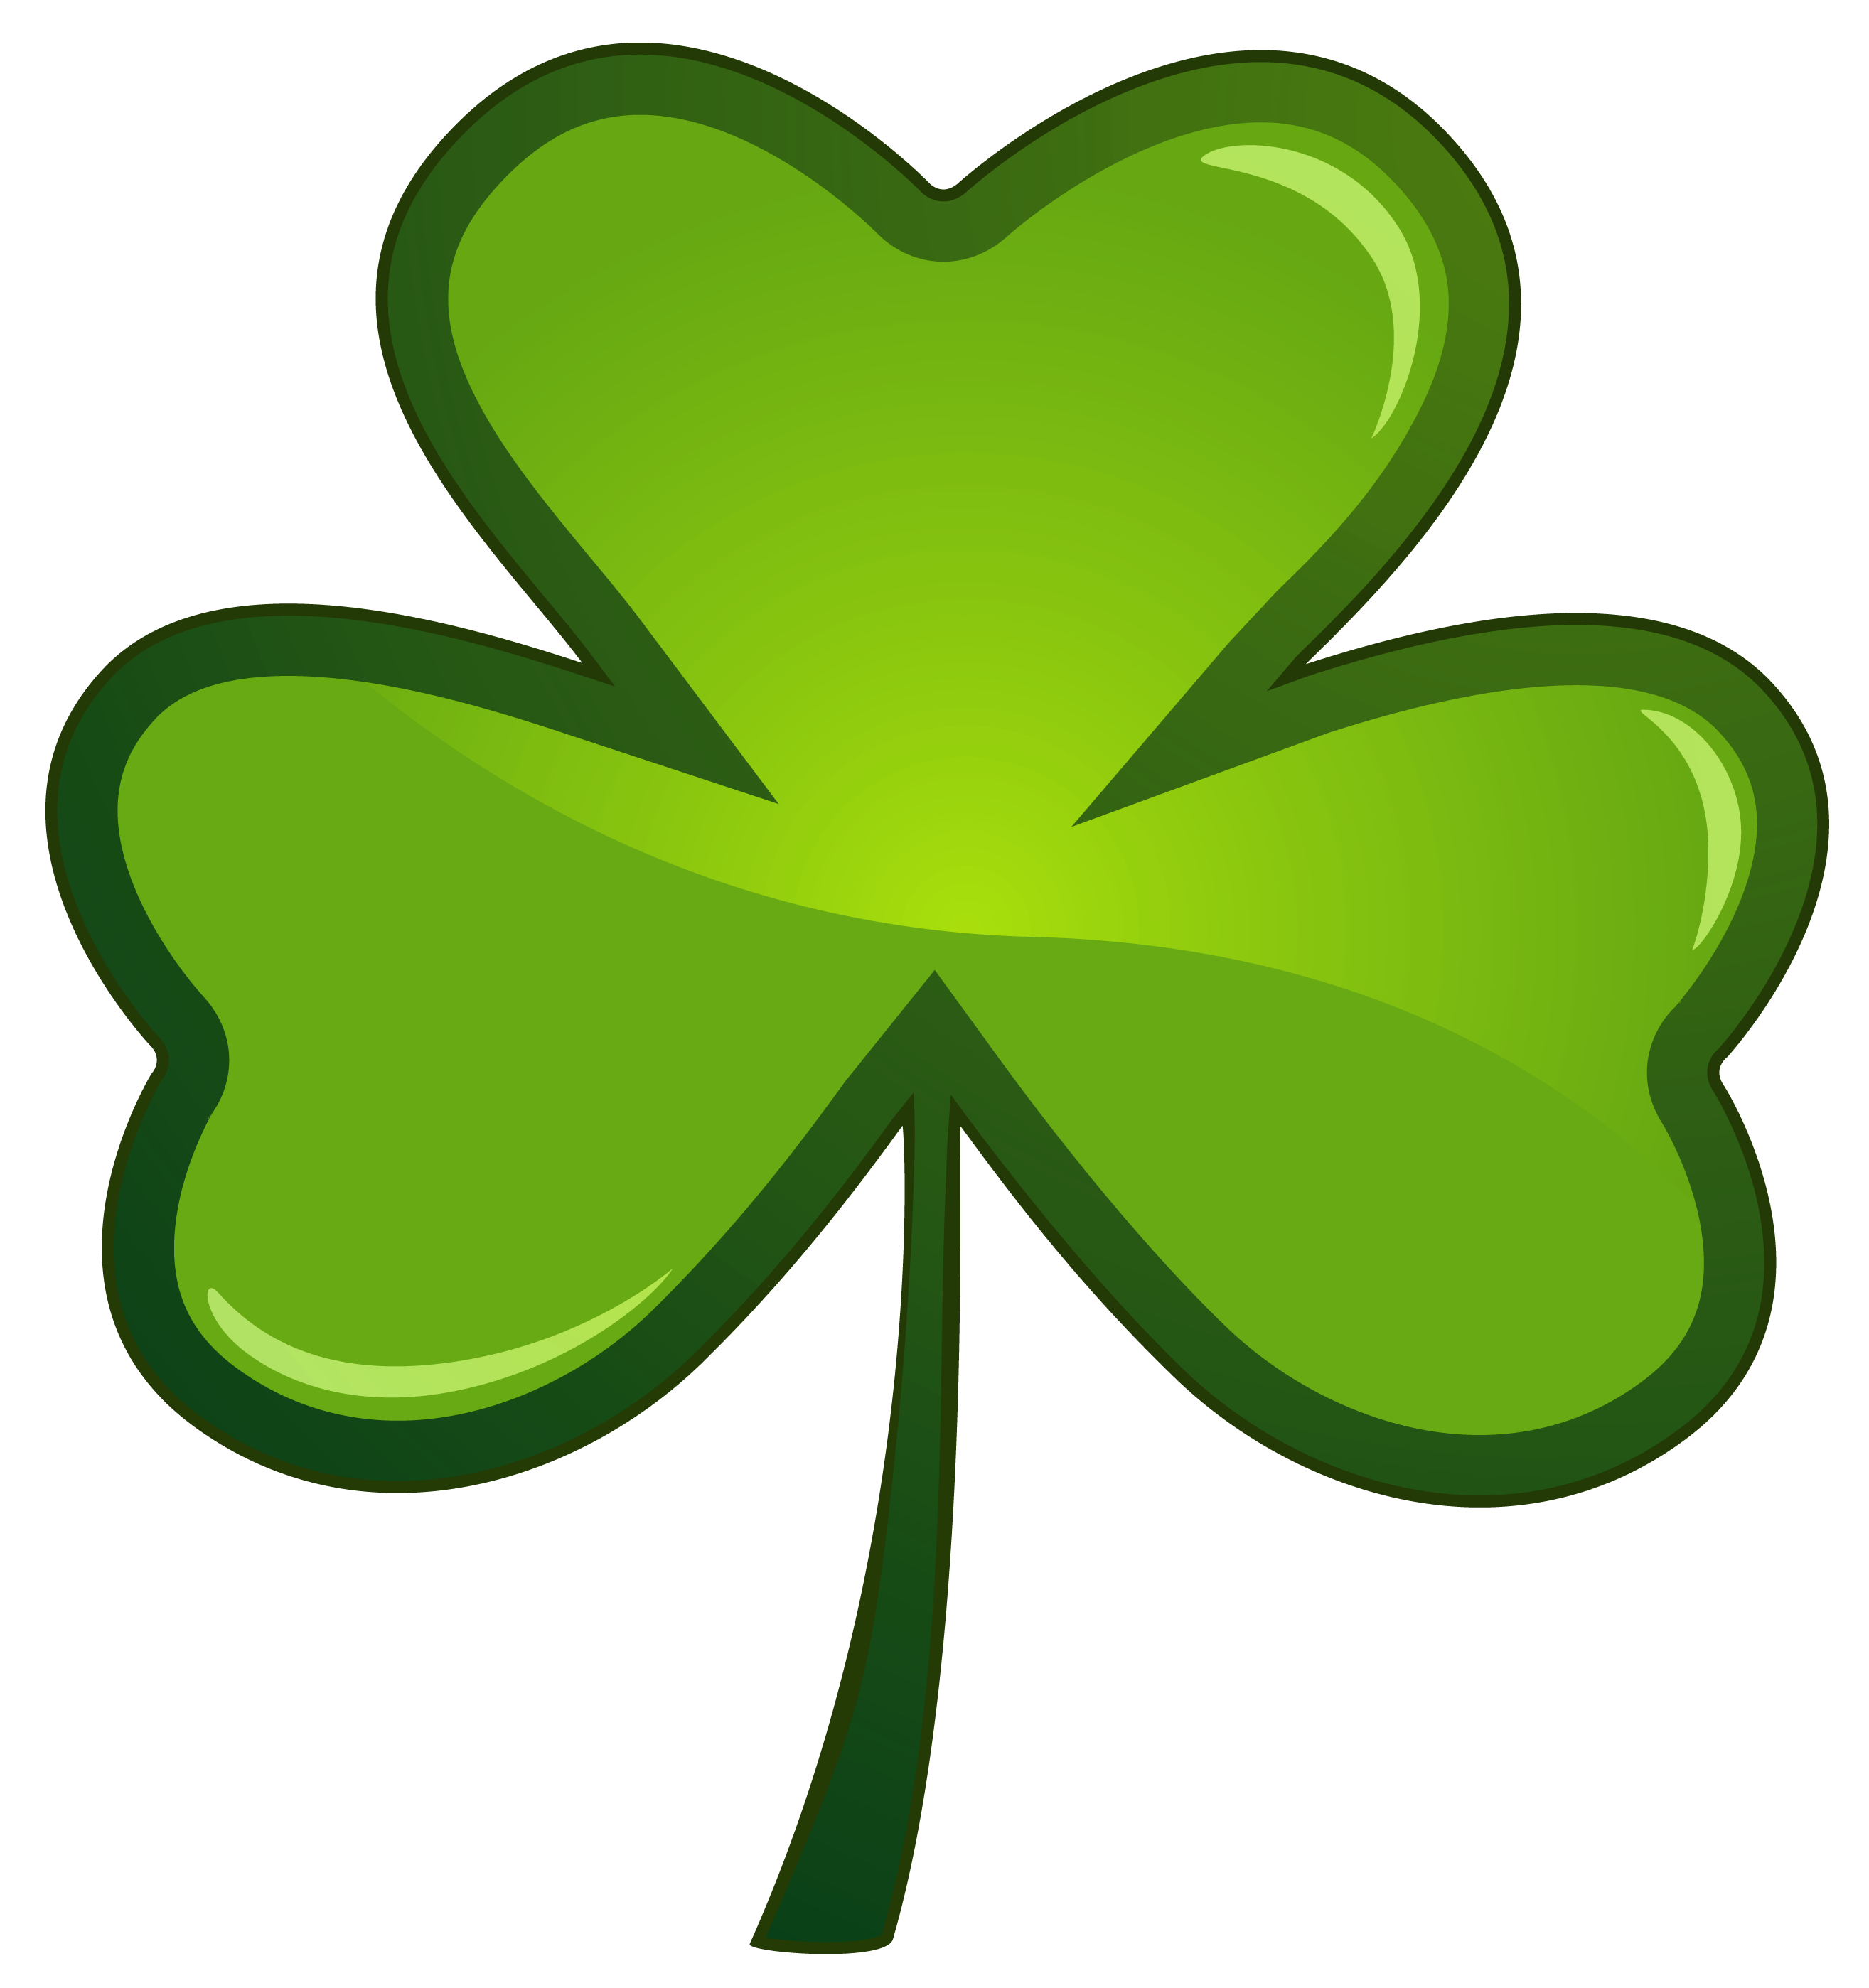 clipart black and white Crammed Free St Patricks Day Clipart Patrick S Horseshoe PNG Clip